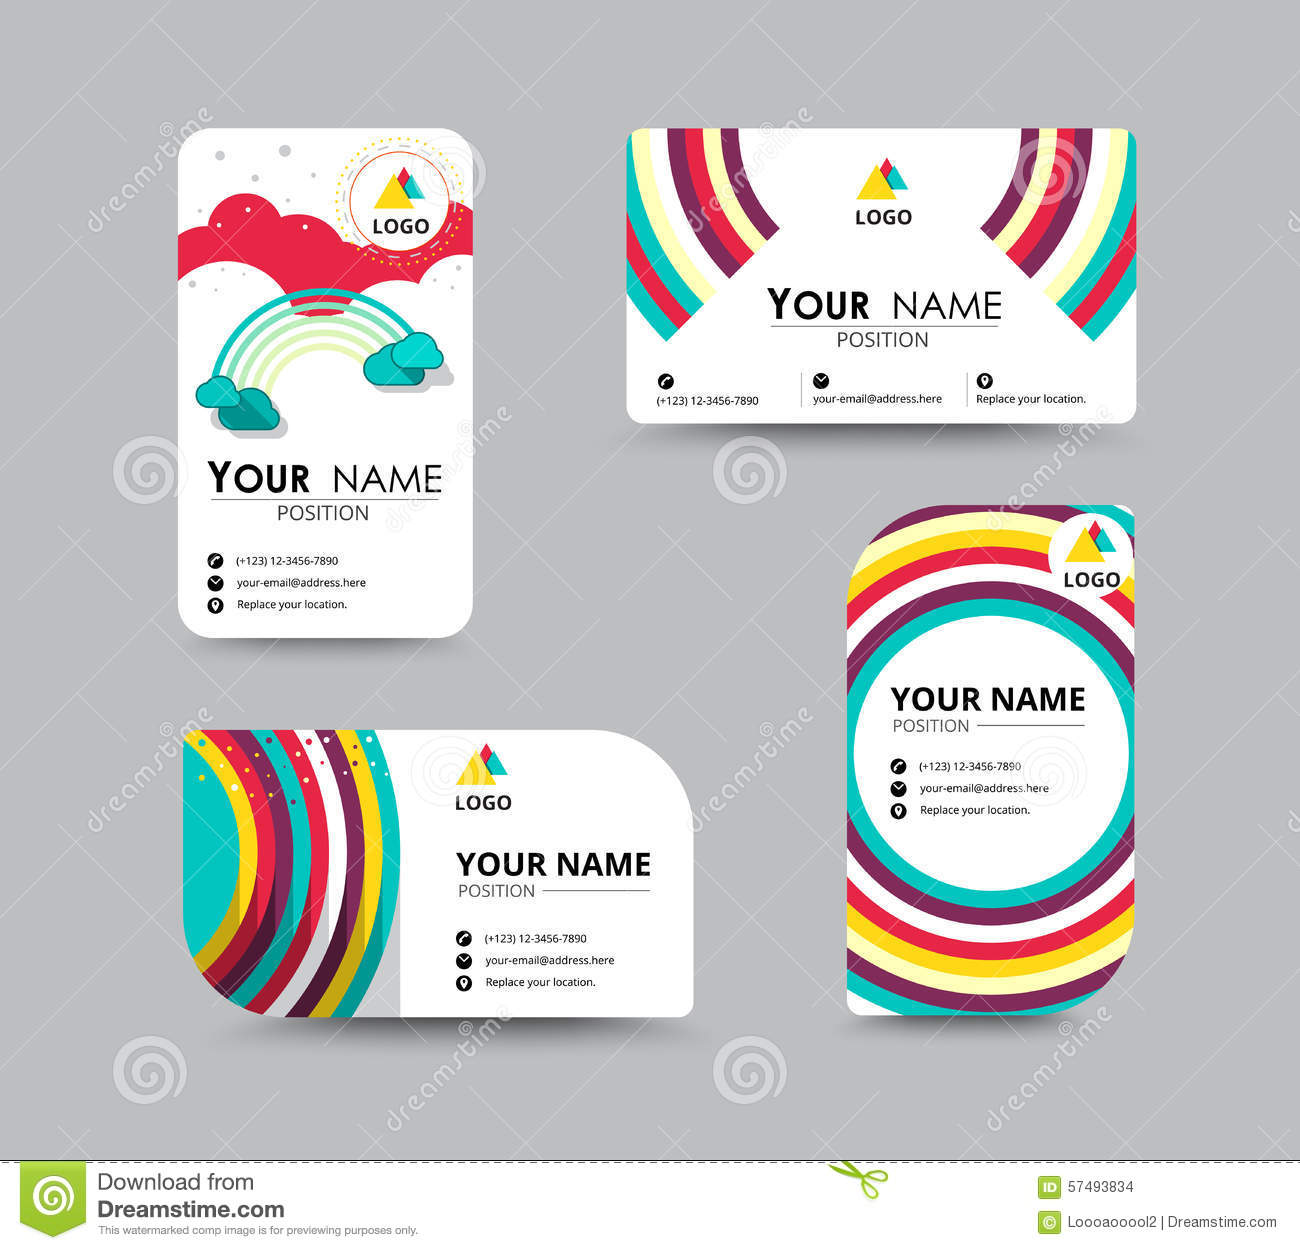 contact card template - Fieldstation.co